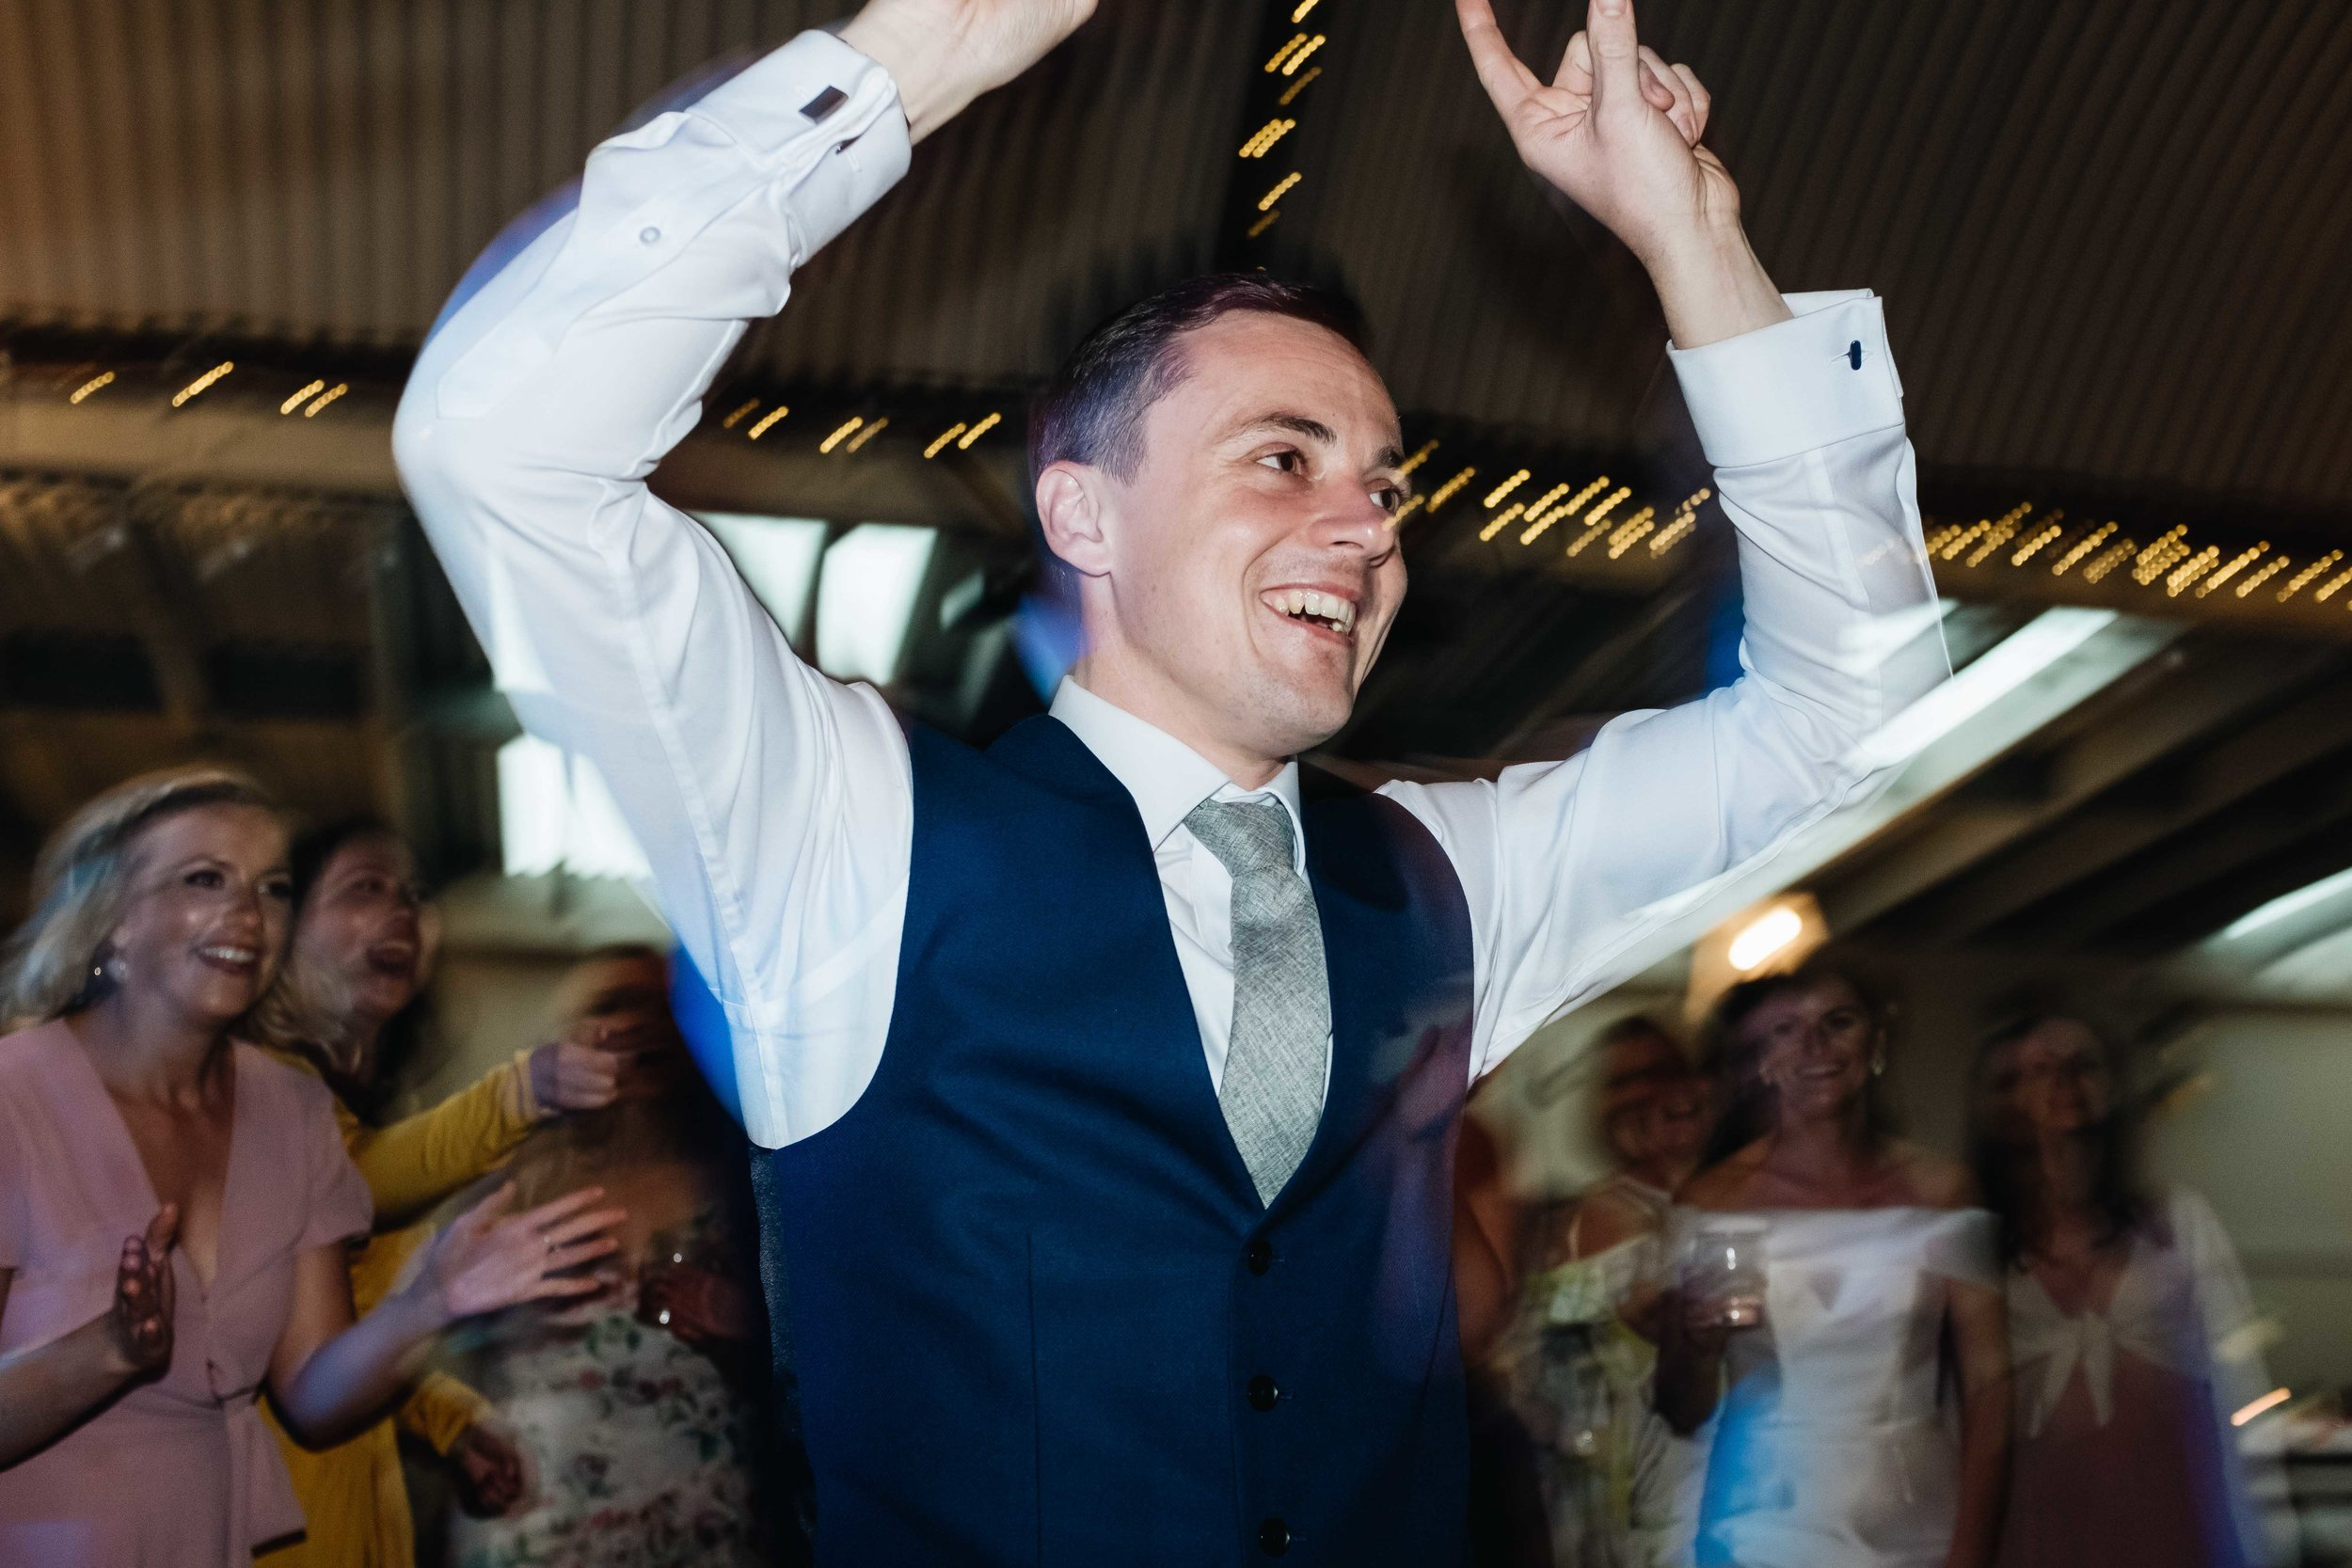 groom is dancing with his hands in the air